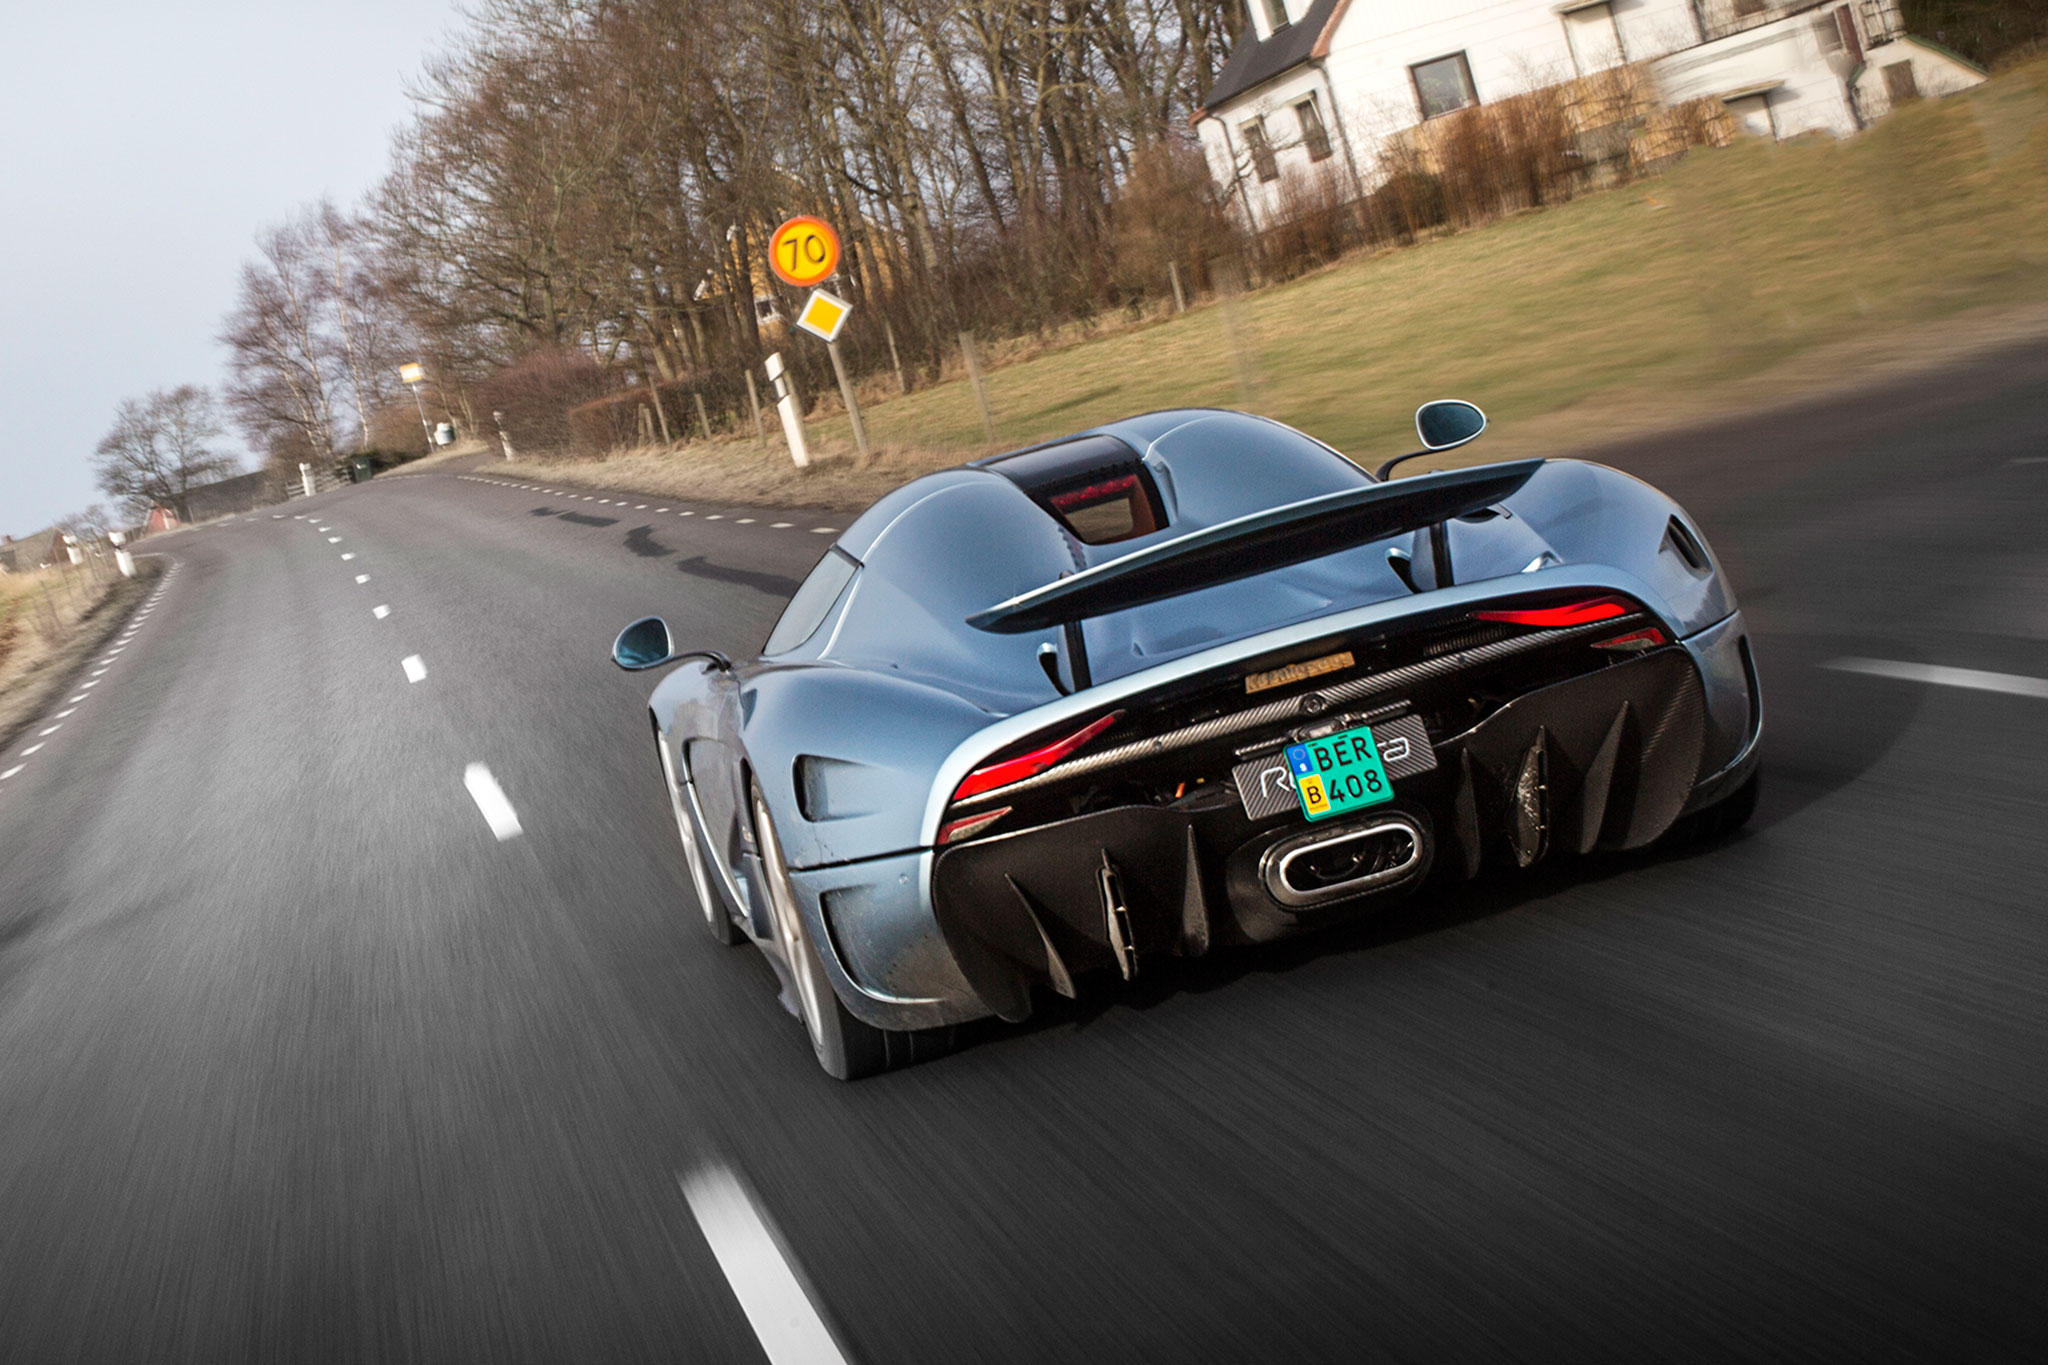 koenigsegg regera hp with New King Sweden Koenigsegg Regera on BC4C6EA771E5AB21CA257DFE000E097A as well Lamborghini Huracan Lp620 2 Supertrofeo Track One Take likewise Koenigsegg Agera Rs additionally Koenigsegg Regera 561044501 in addition 1 500hp Koenigsegg Regera Hypercar Gets 2 3 193013389.